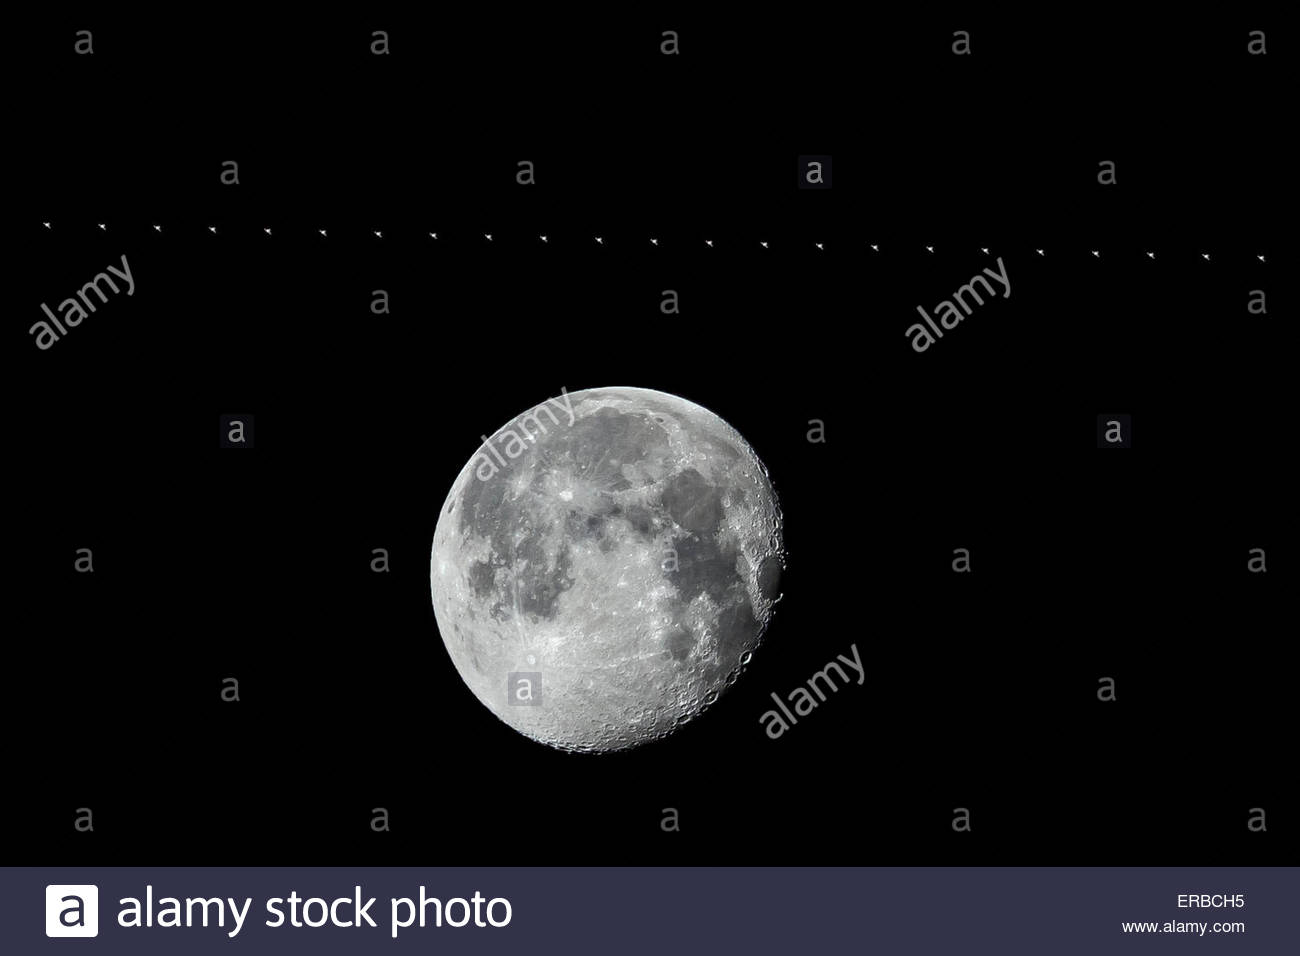 near-full moon waning ISS International Space Station fly-by passing timelapse composite image b/w black & white - Stock Image